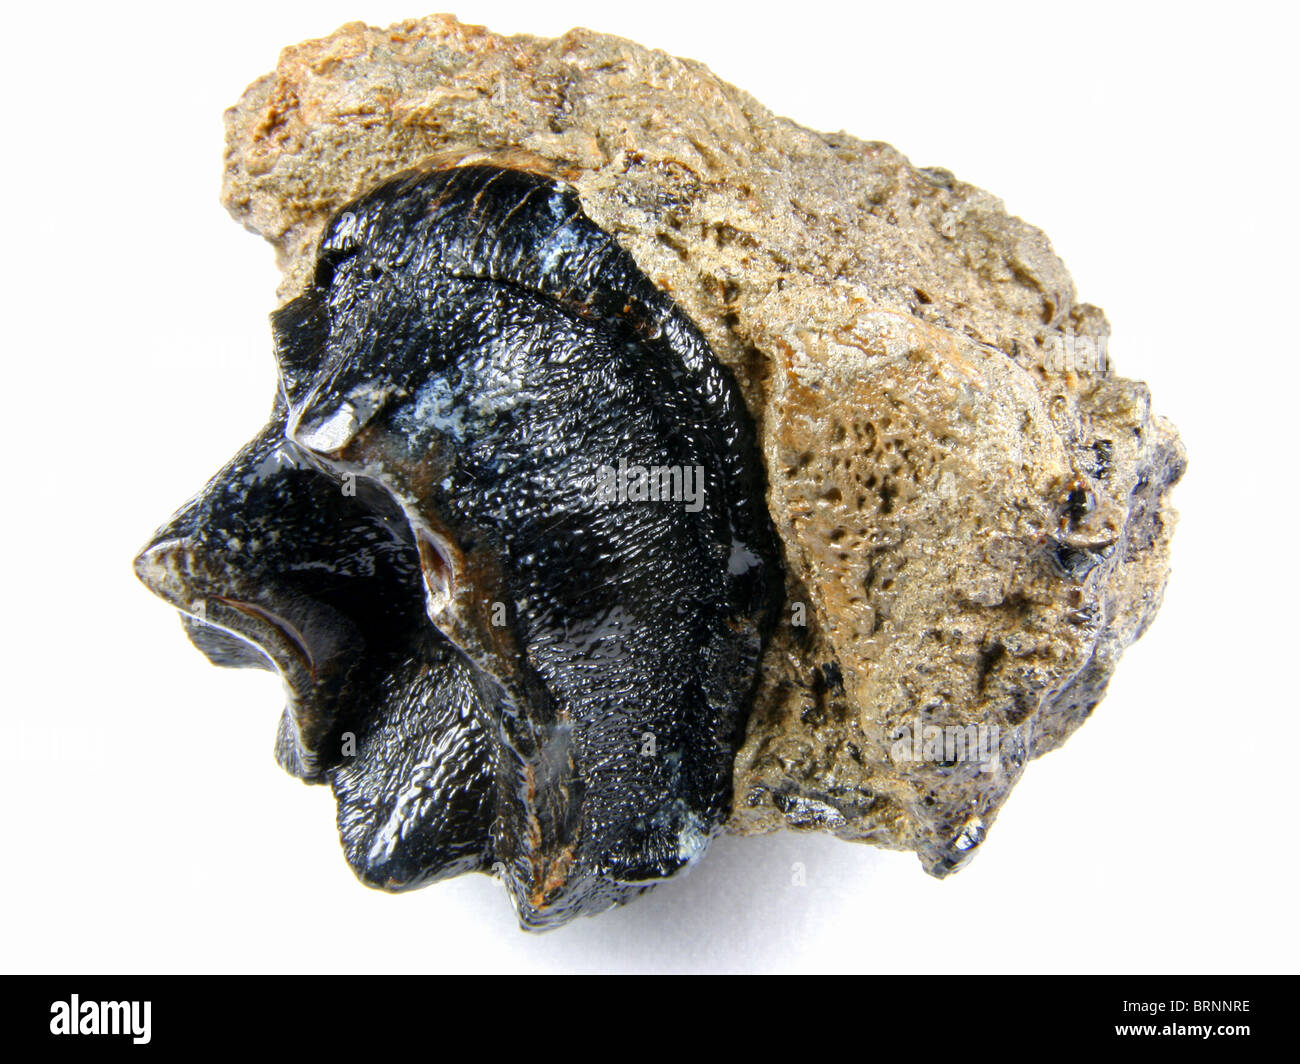 Coryphodon sp. (tooth from a species of an extinct genus of North American hippopotamus-like mammals) 53 million - Stock Image